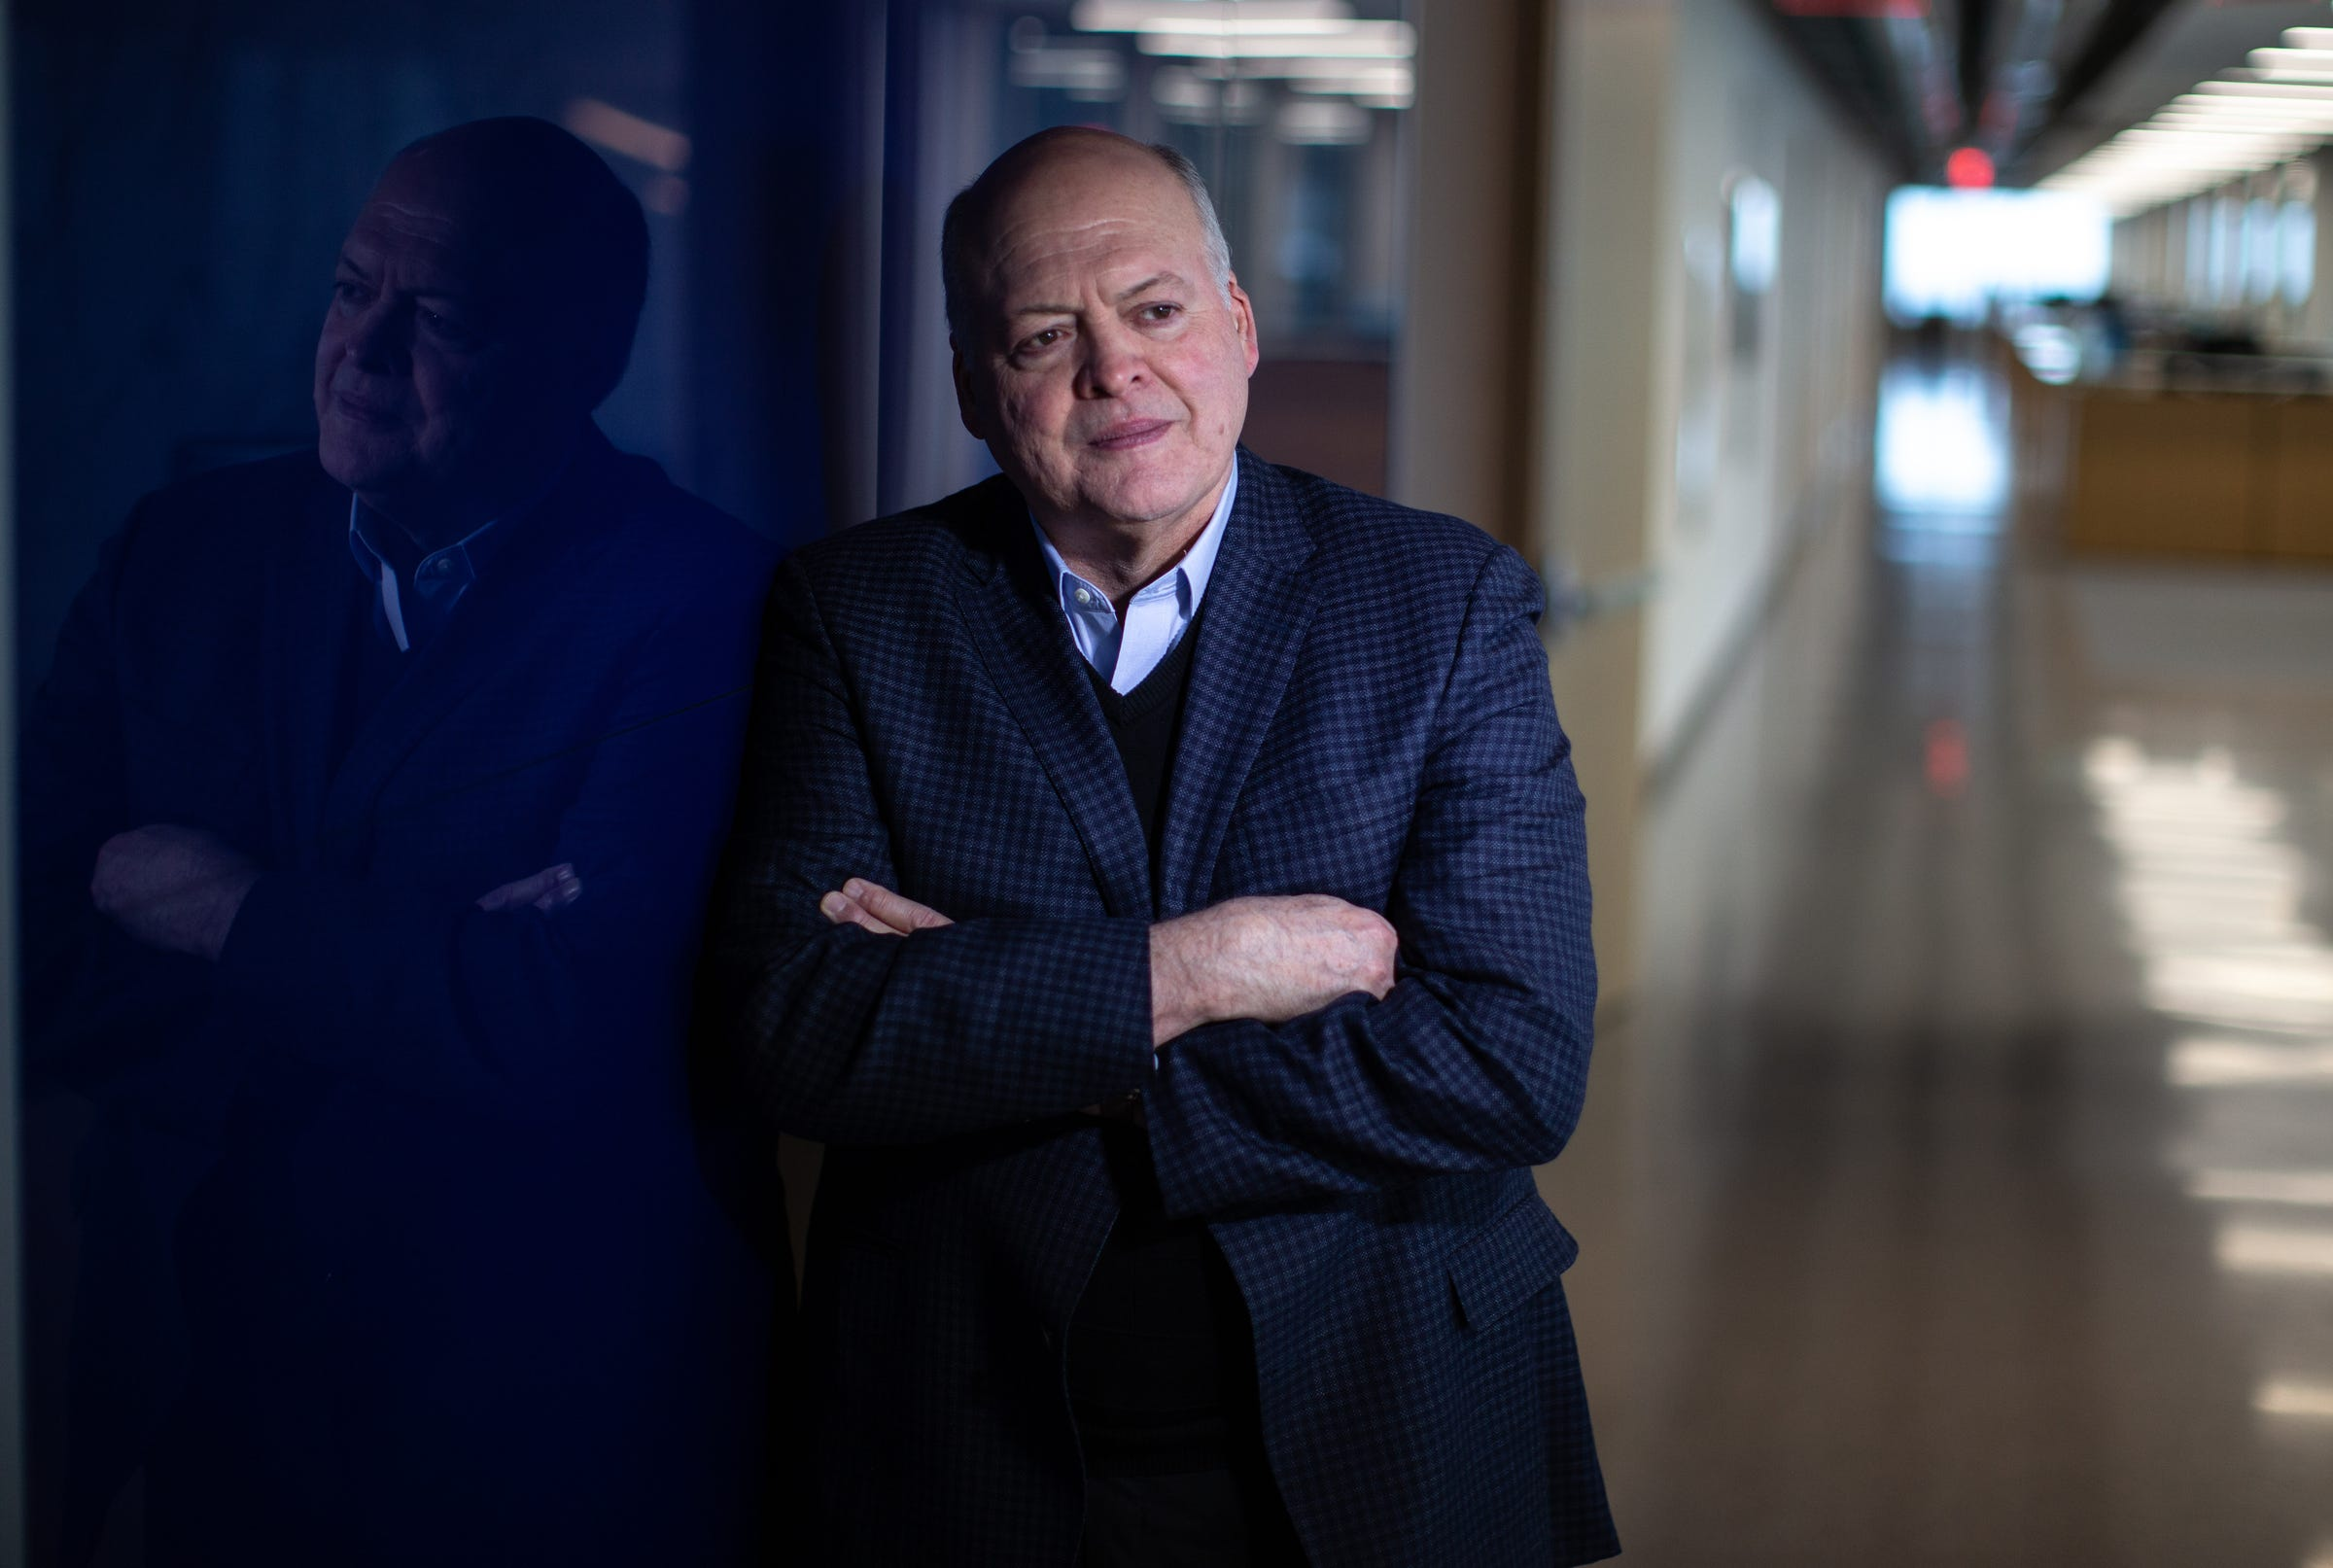 Ford CEO Jim Hackett pay raise means he earns 276 times more than median employee